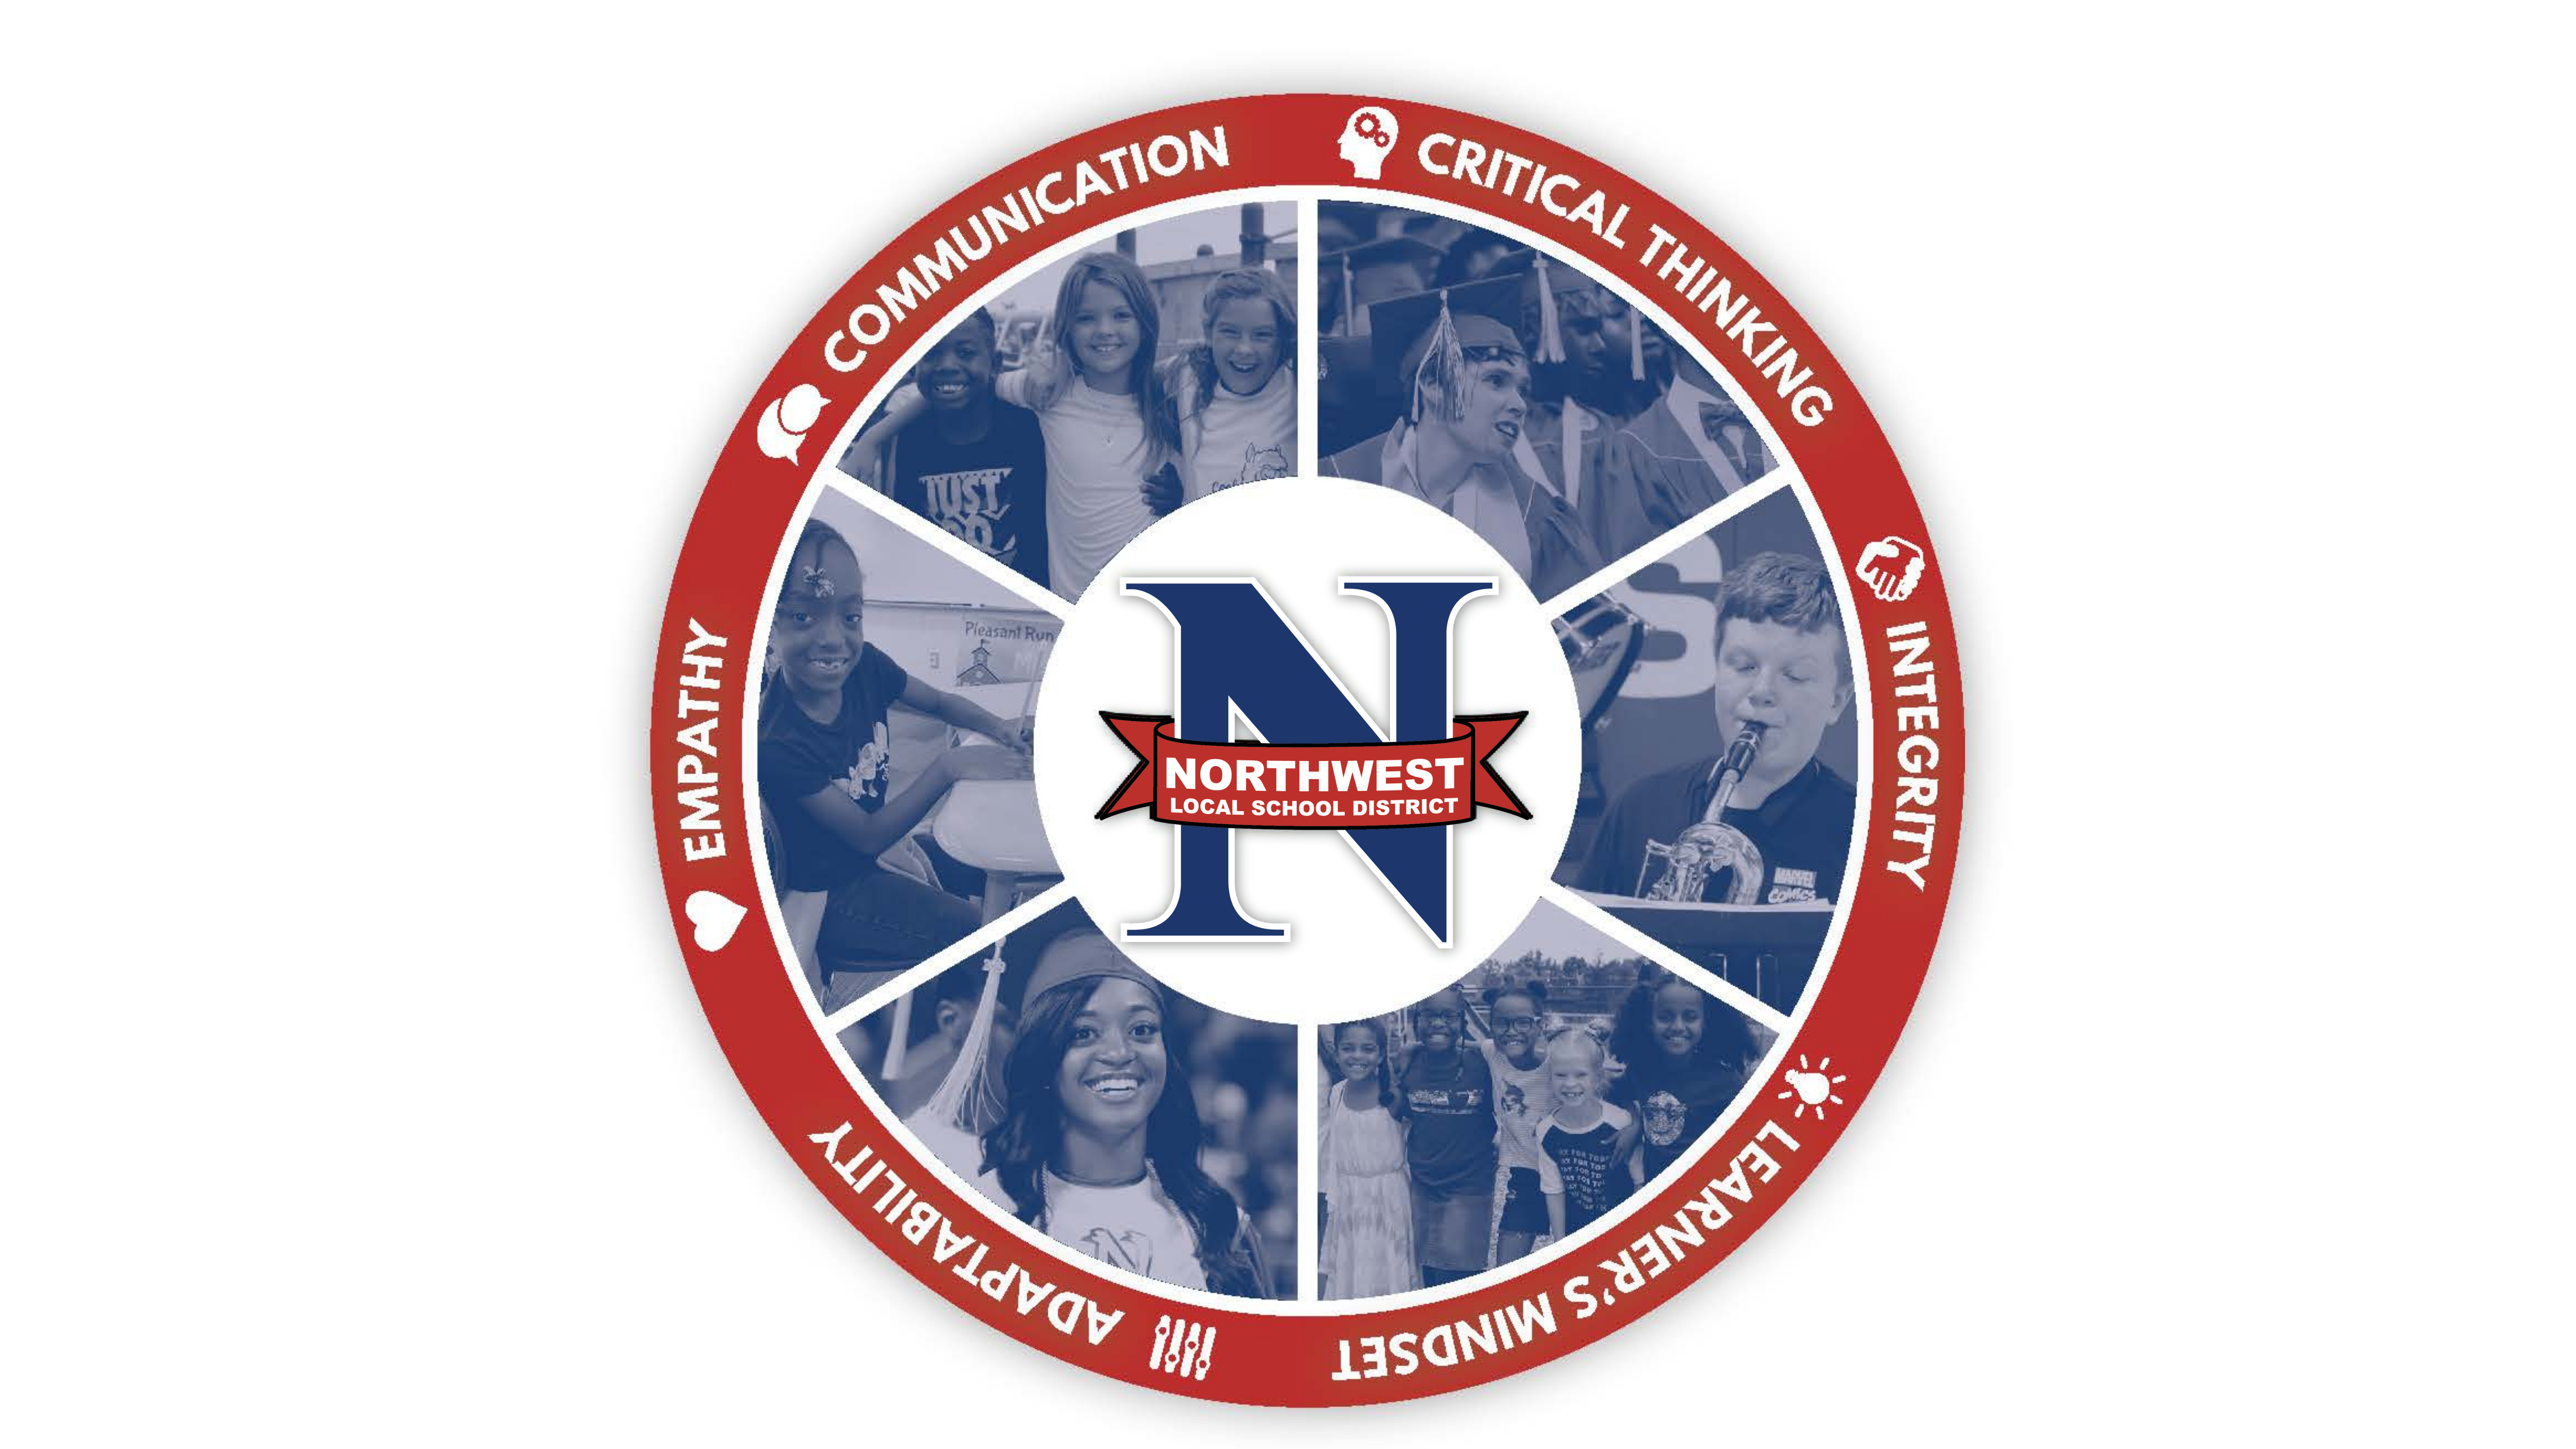 Northwest Local School District Portrait of a Graduate: Communication, Critical Thinking, Integrity, Learner's Mindset, Adaptability, Empathy